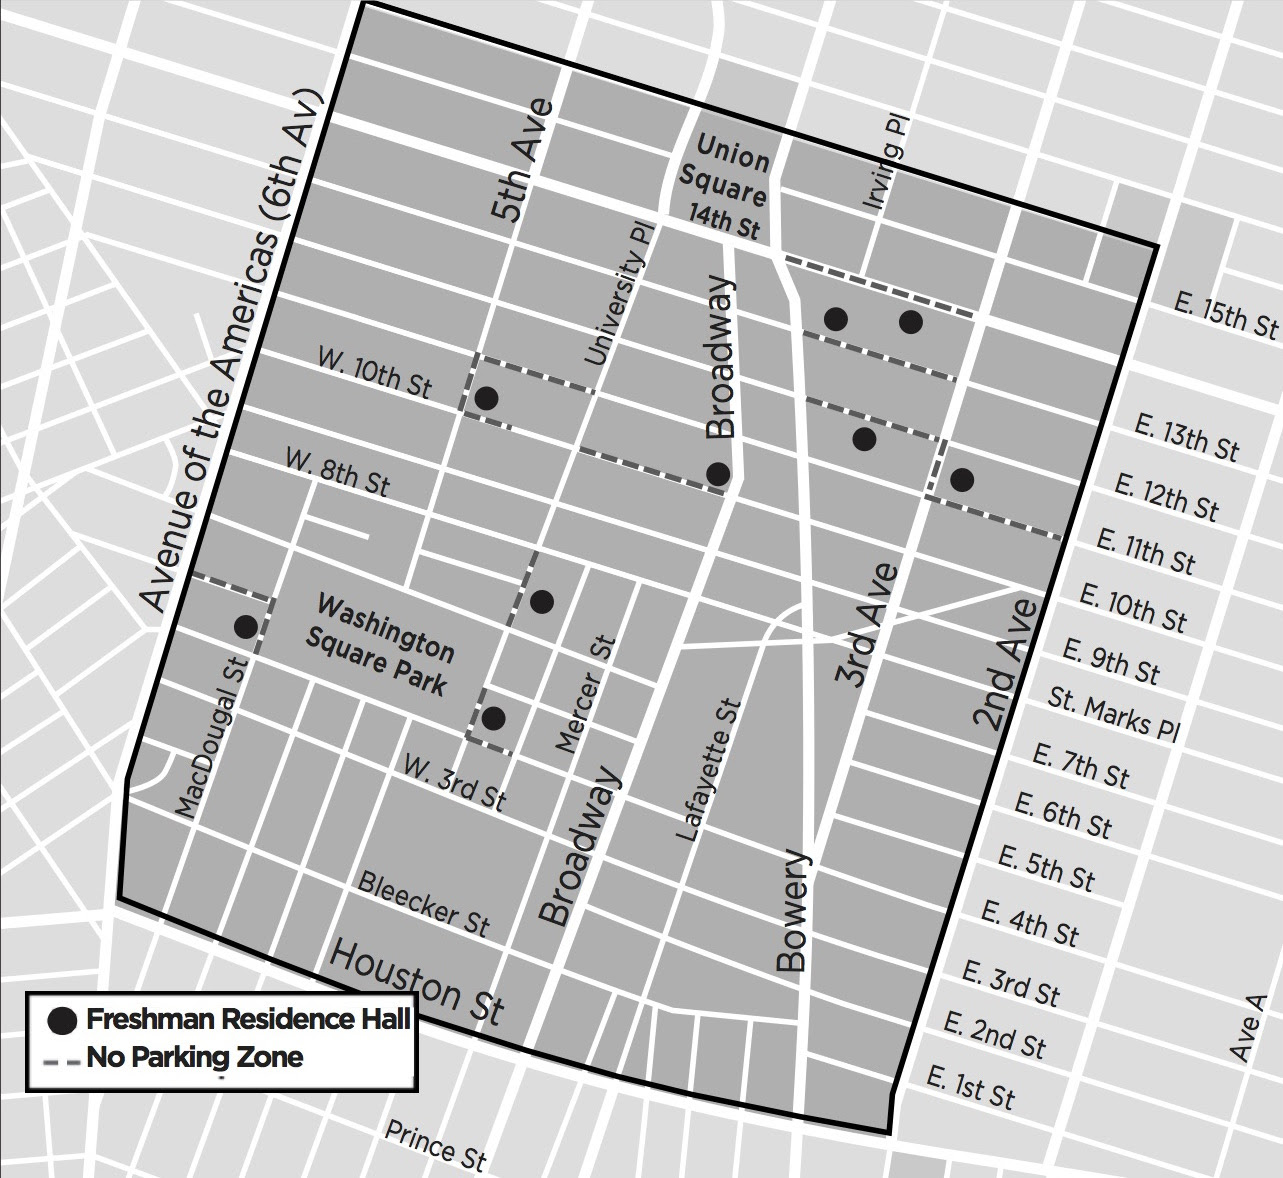 Residents within the shaded area may request reimbursement for cars stores in a garage on Saturday night or Sunday during the day,August 26-27 (up to 24-hours).